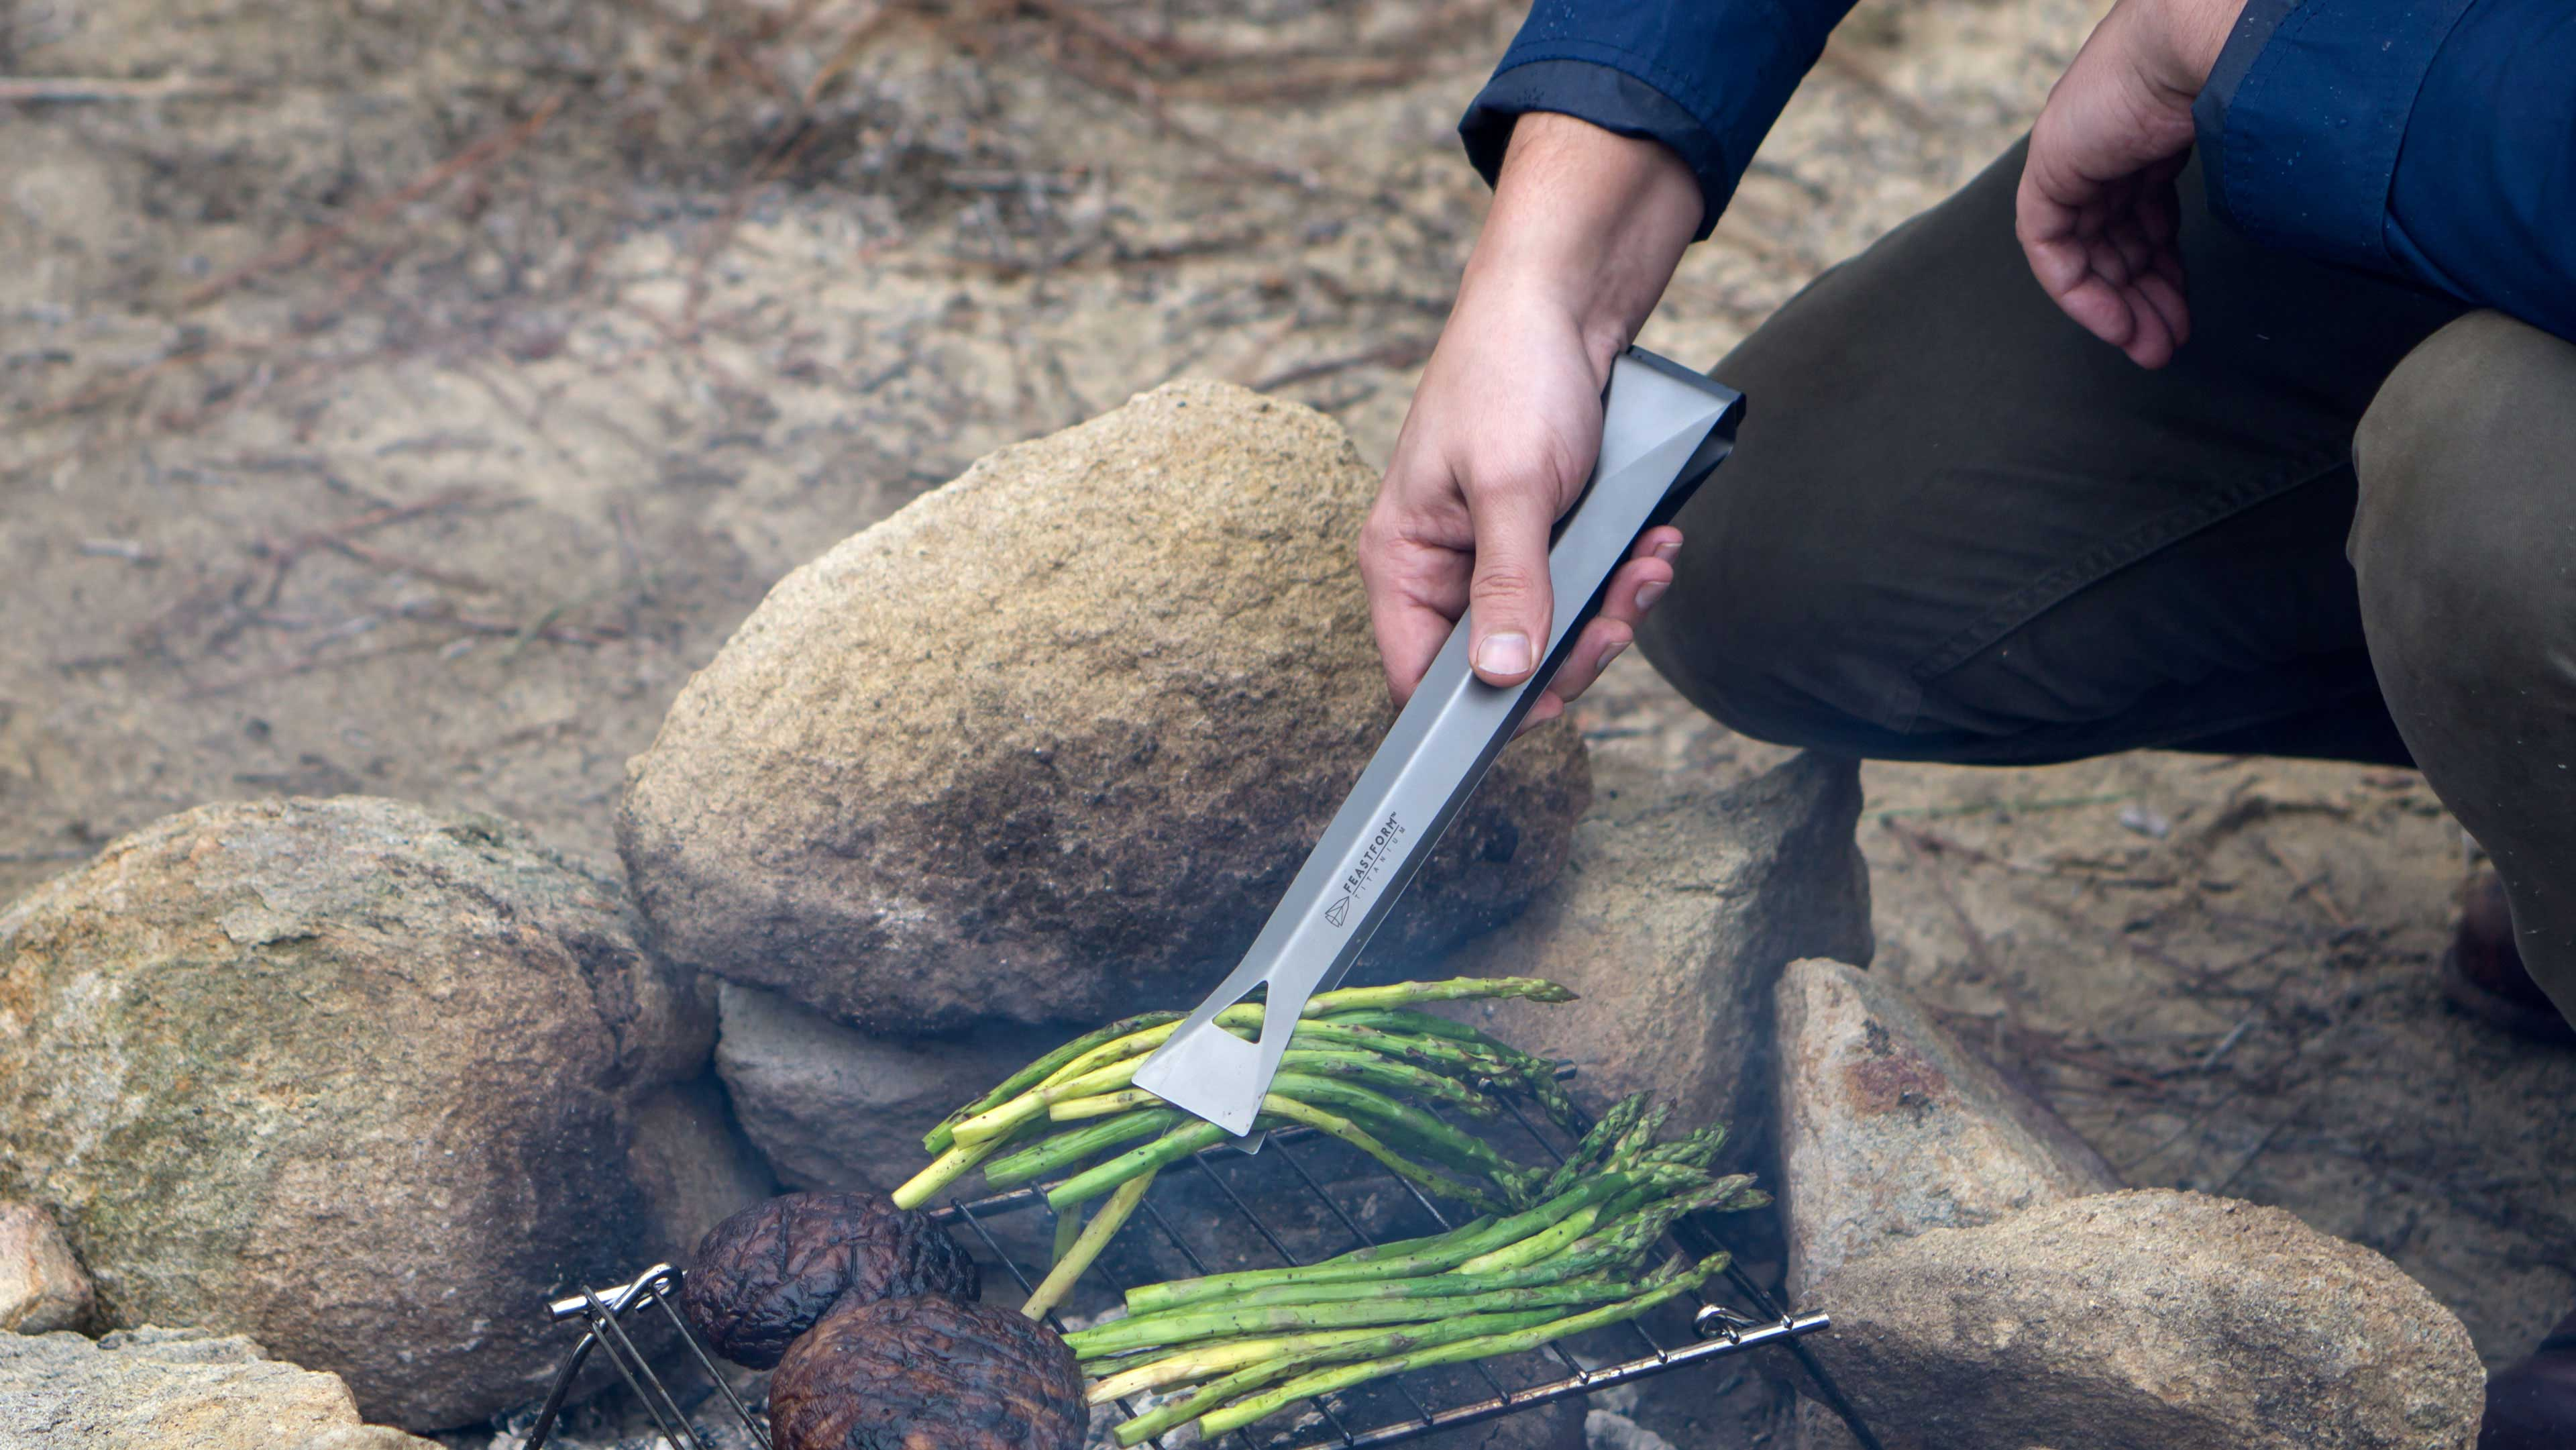 Assembled Feastform titanium camping tongs in use.